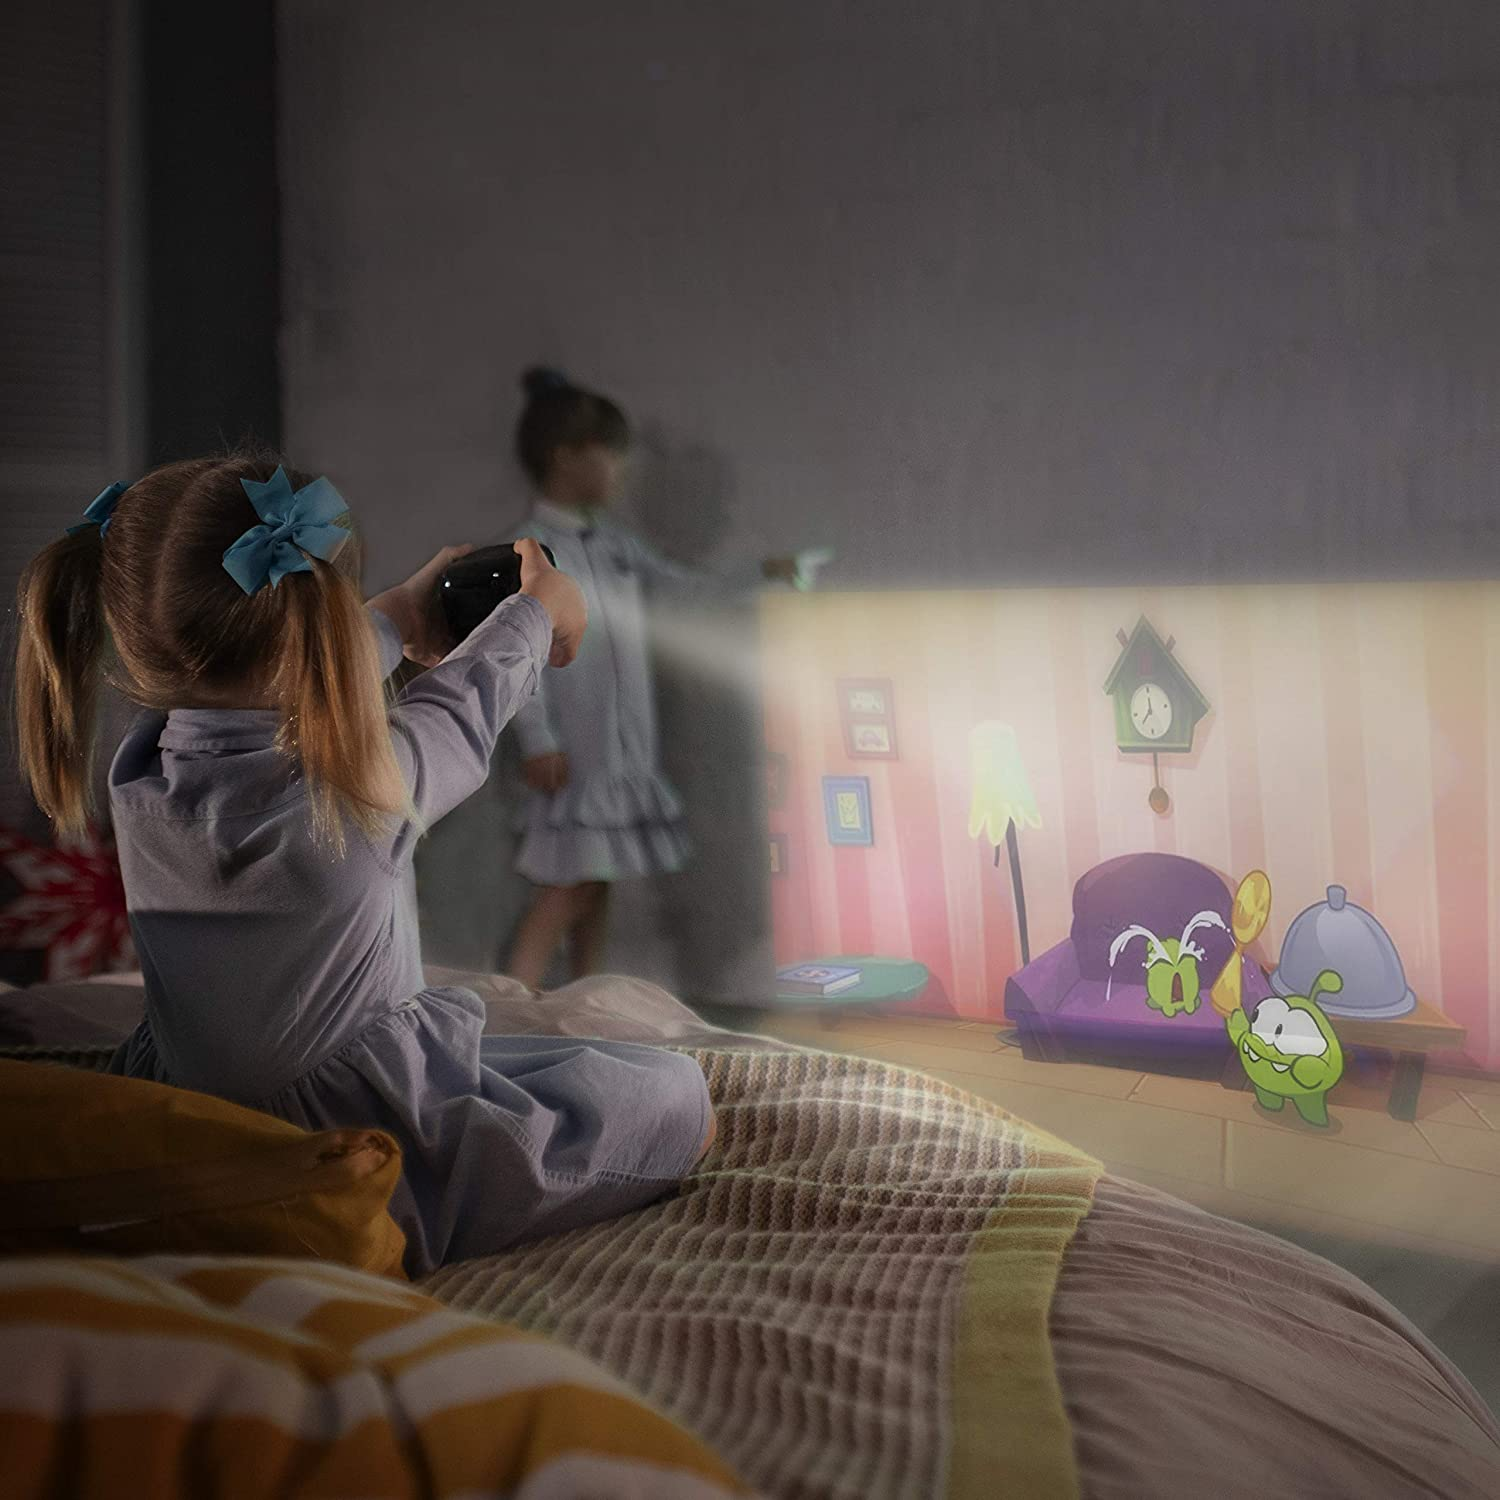 kids with a portable projector